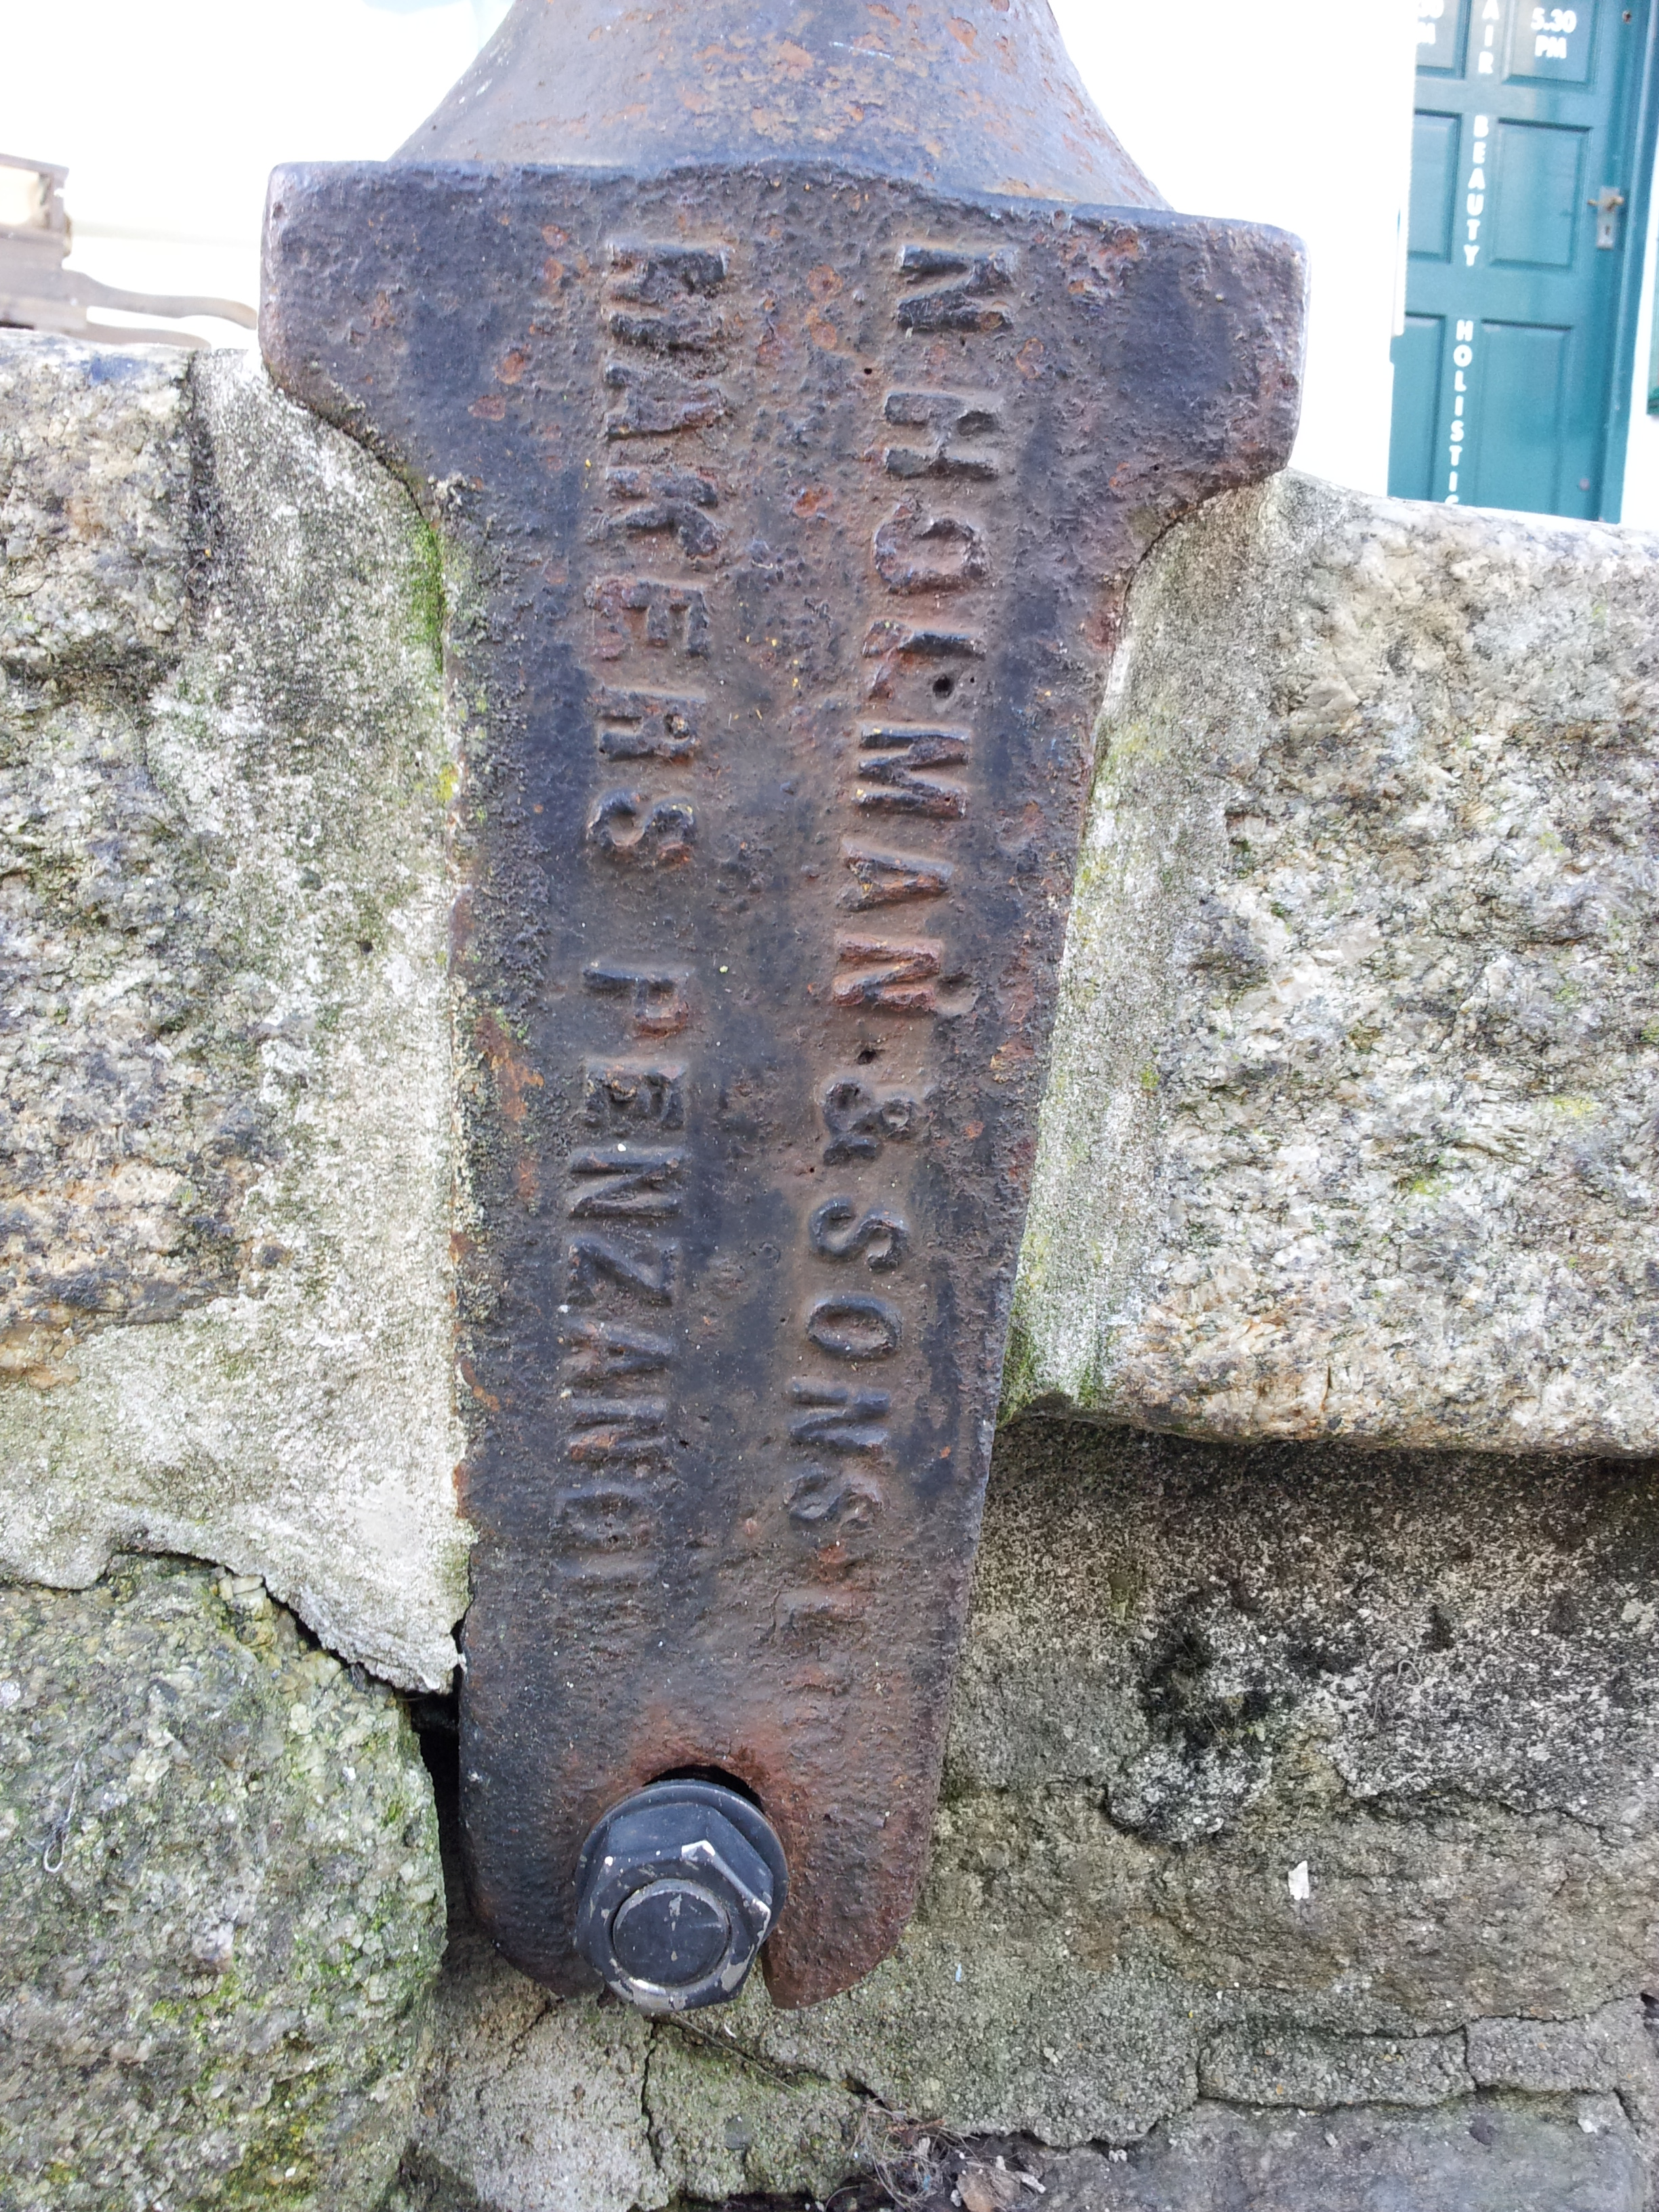 Lamp-post by N. Holman, Makers, Penzance (Market Jew Street, Penzance)